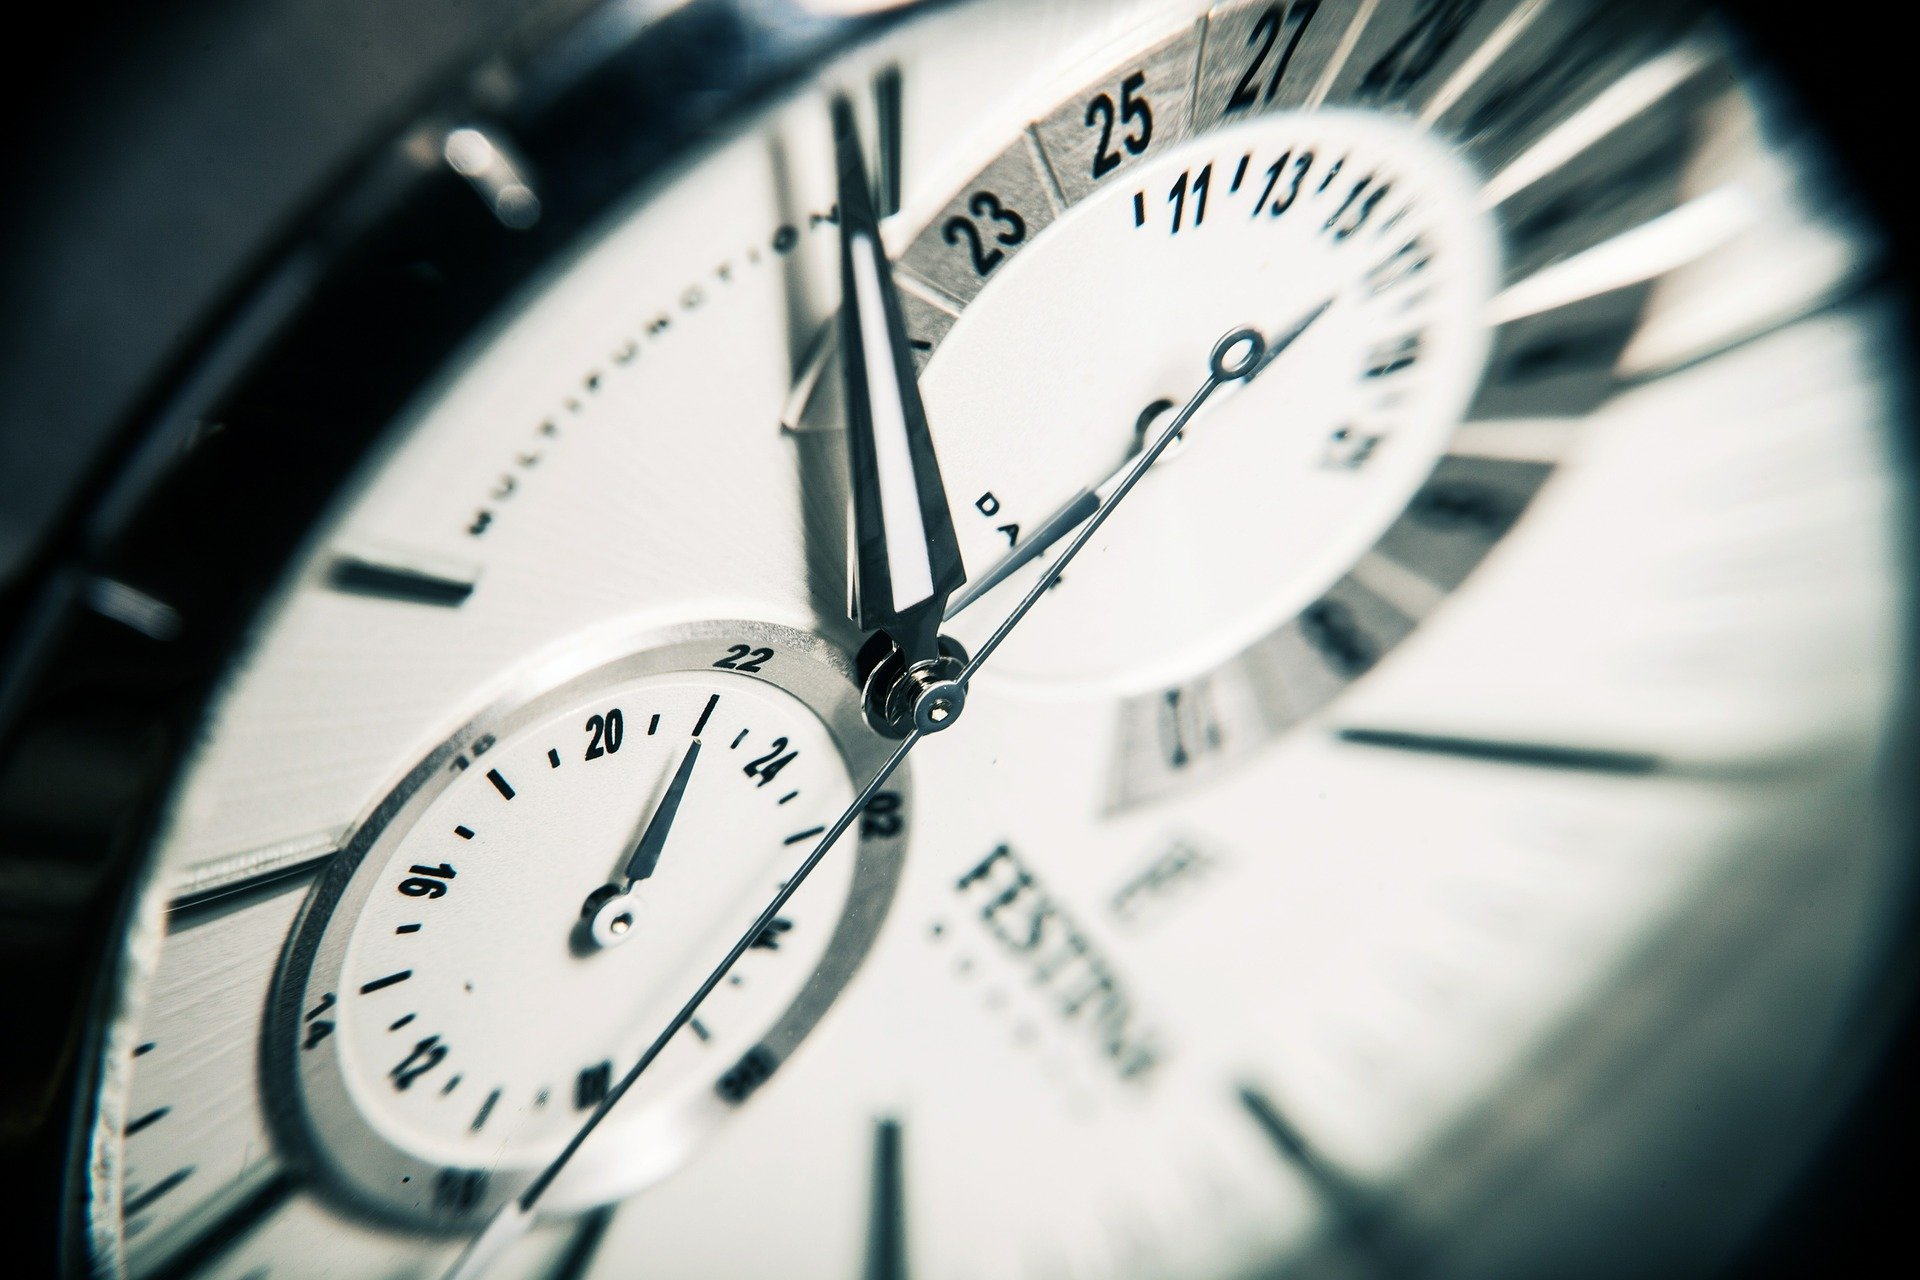 clock face of a watch showing minutes, seconds passing